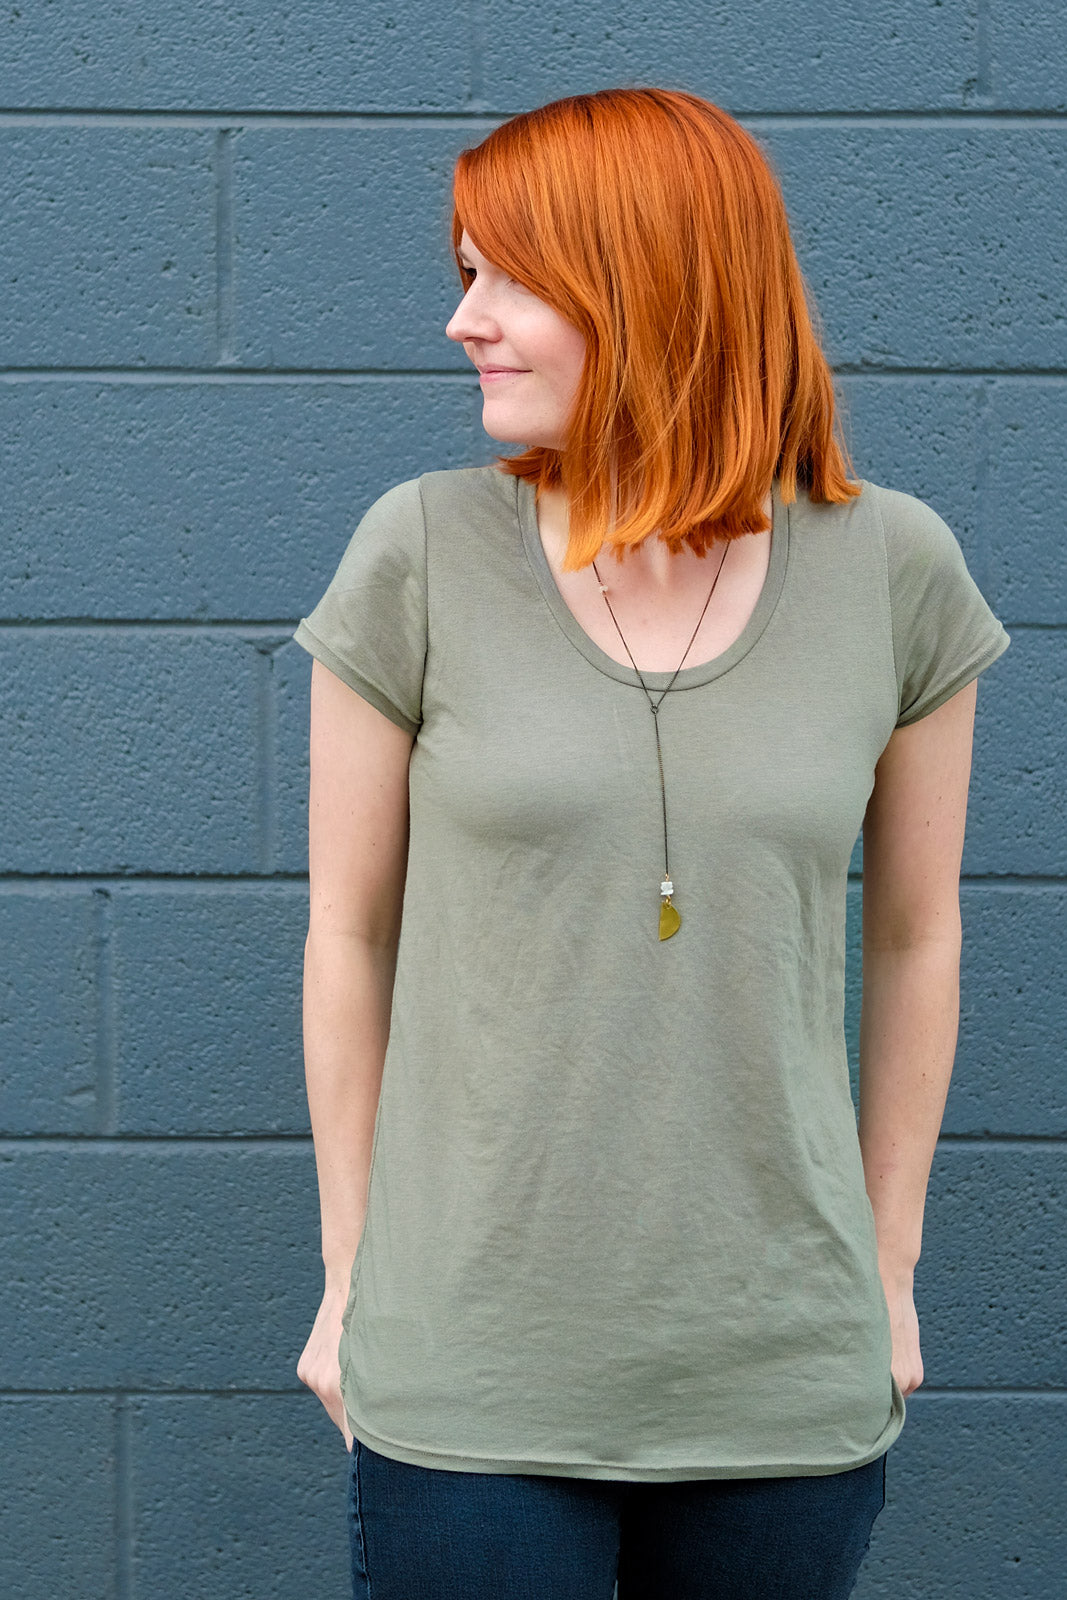 Straight Stitch Designs Montlake Tee made in Bamboo Cotton Jersey